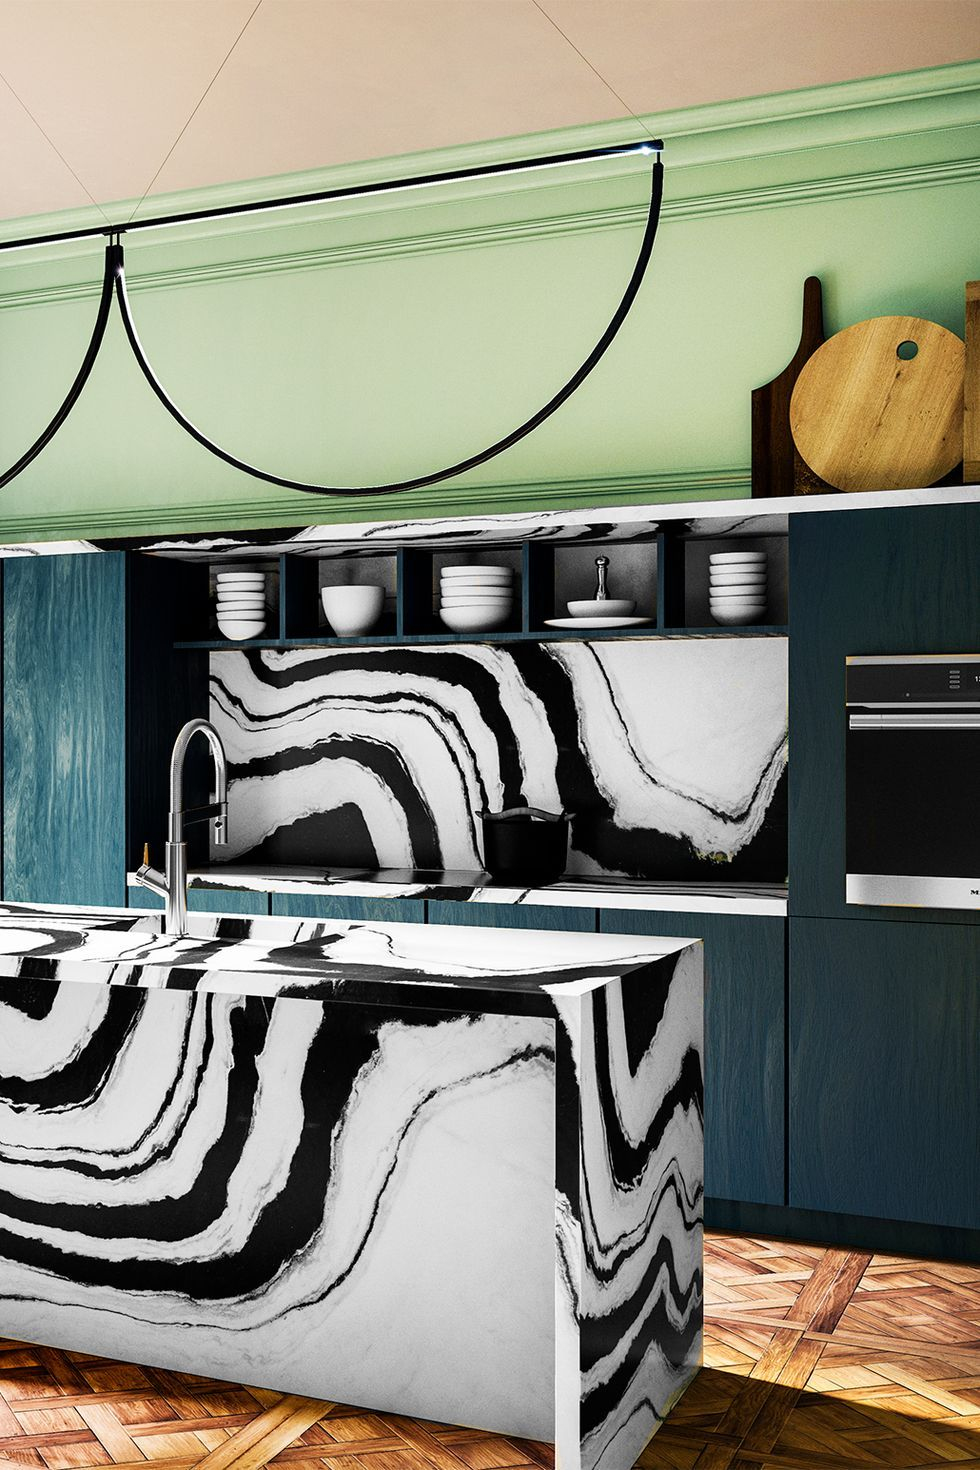 Statement Marble in modern kitchen with blue and green accents